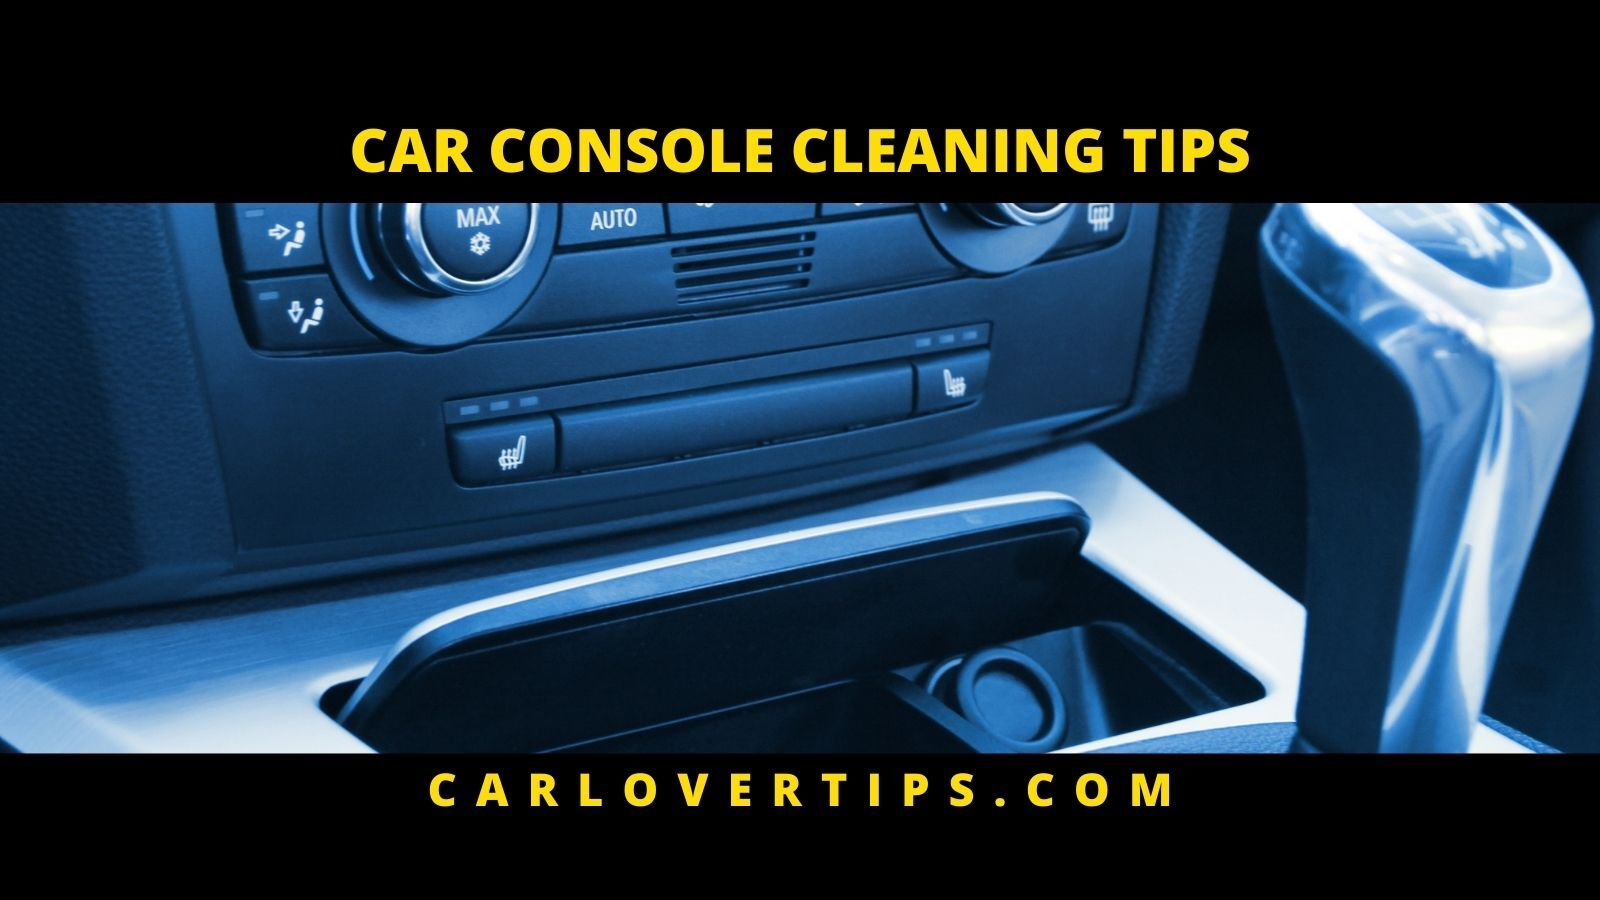 What are some Car Console Cleaner Tips Car Lover Tips